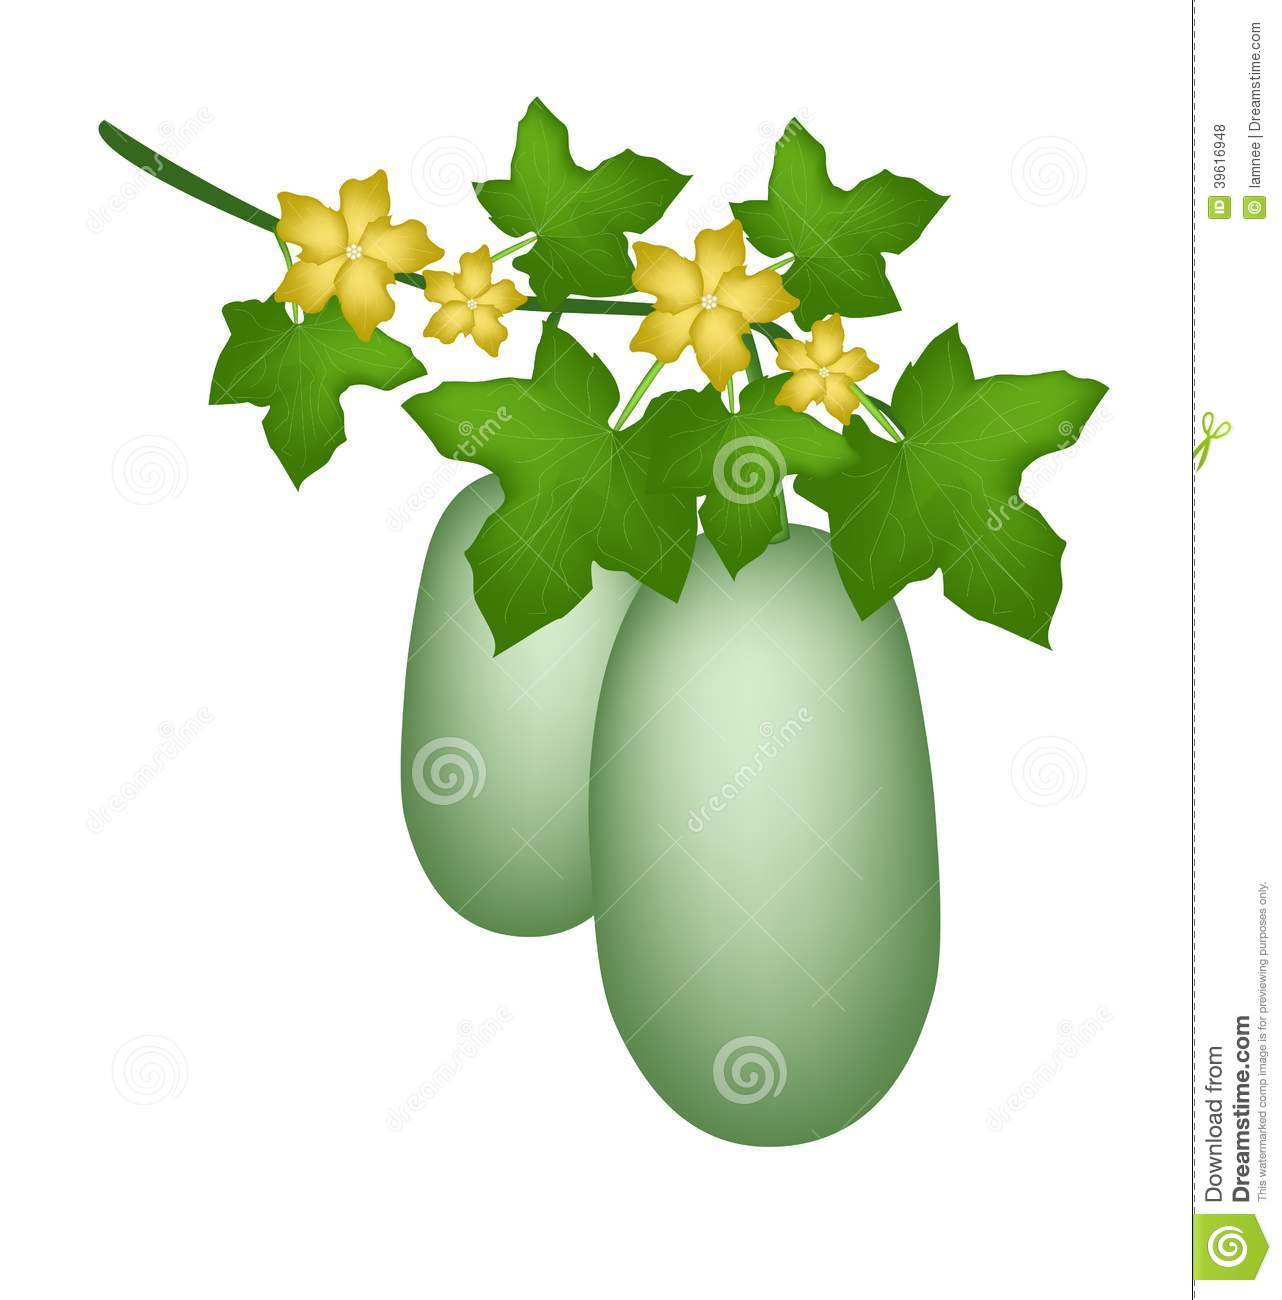 A Winter Melon Plant On White Background Stock Vector.